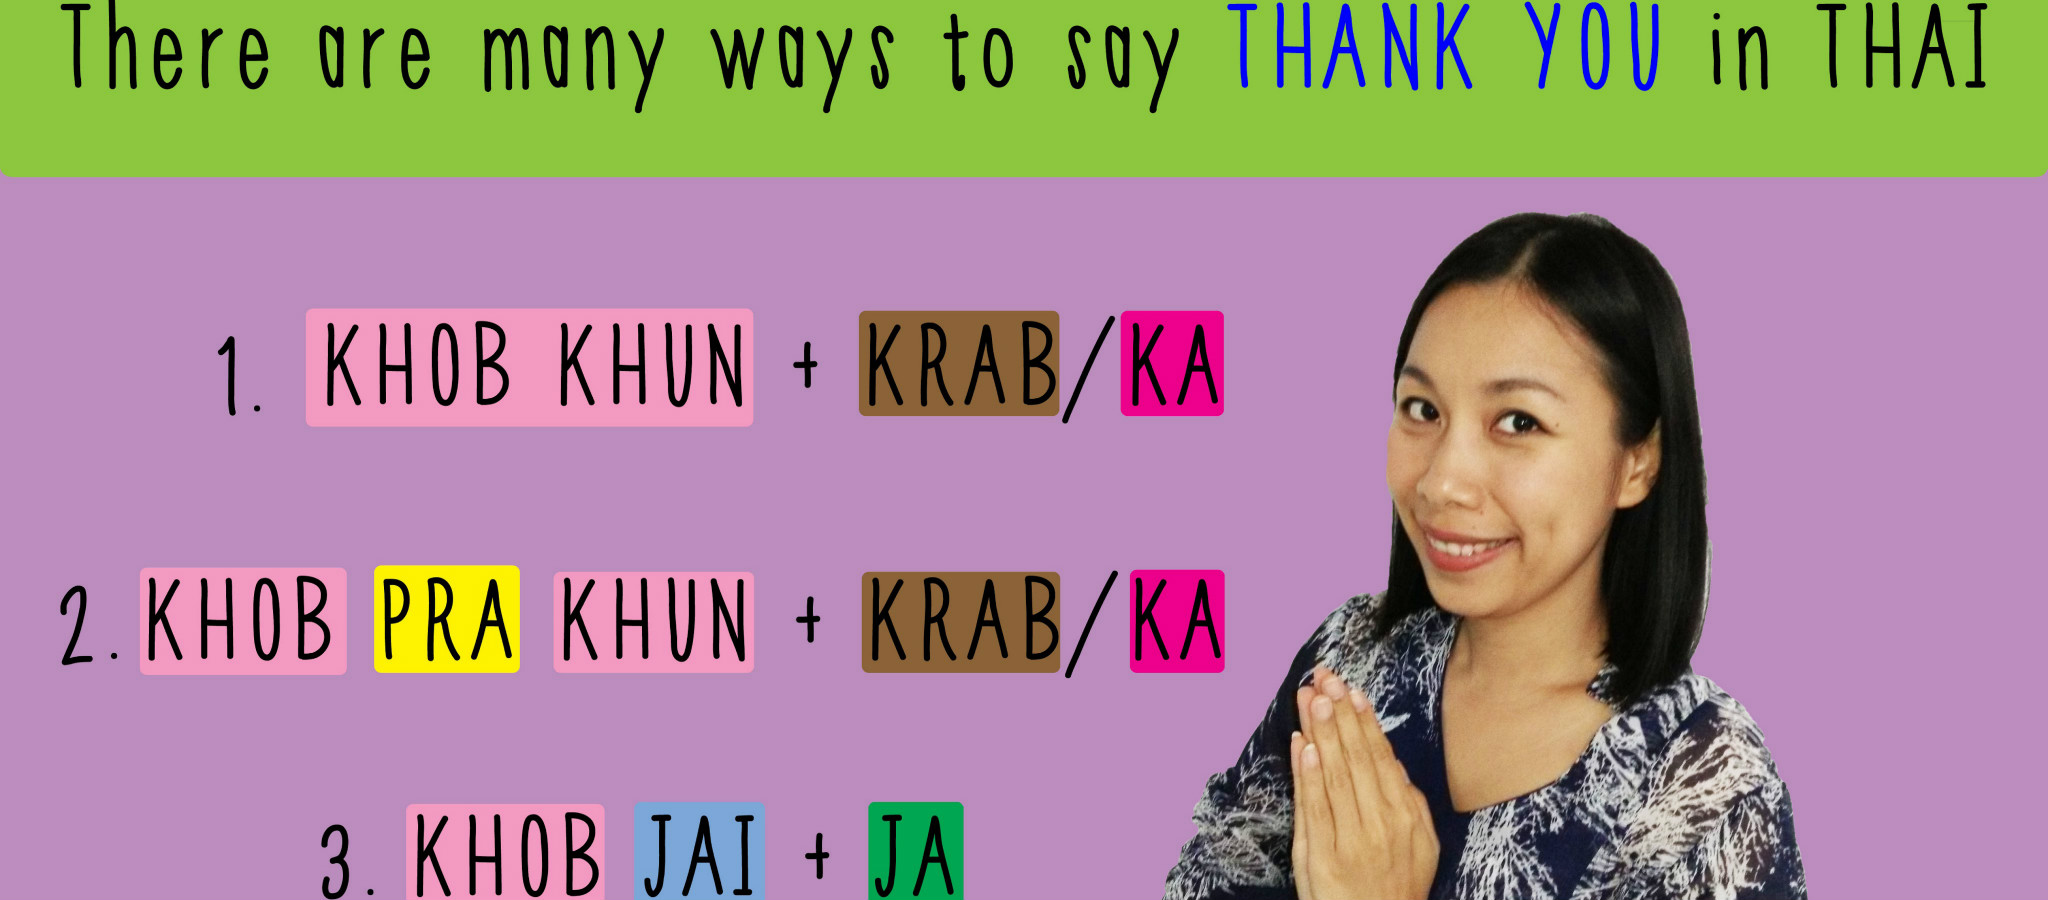 Ways to say thank you in Thai